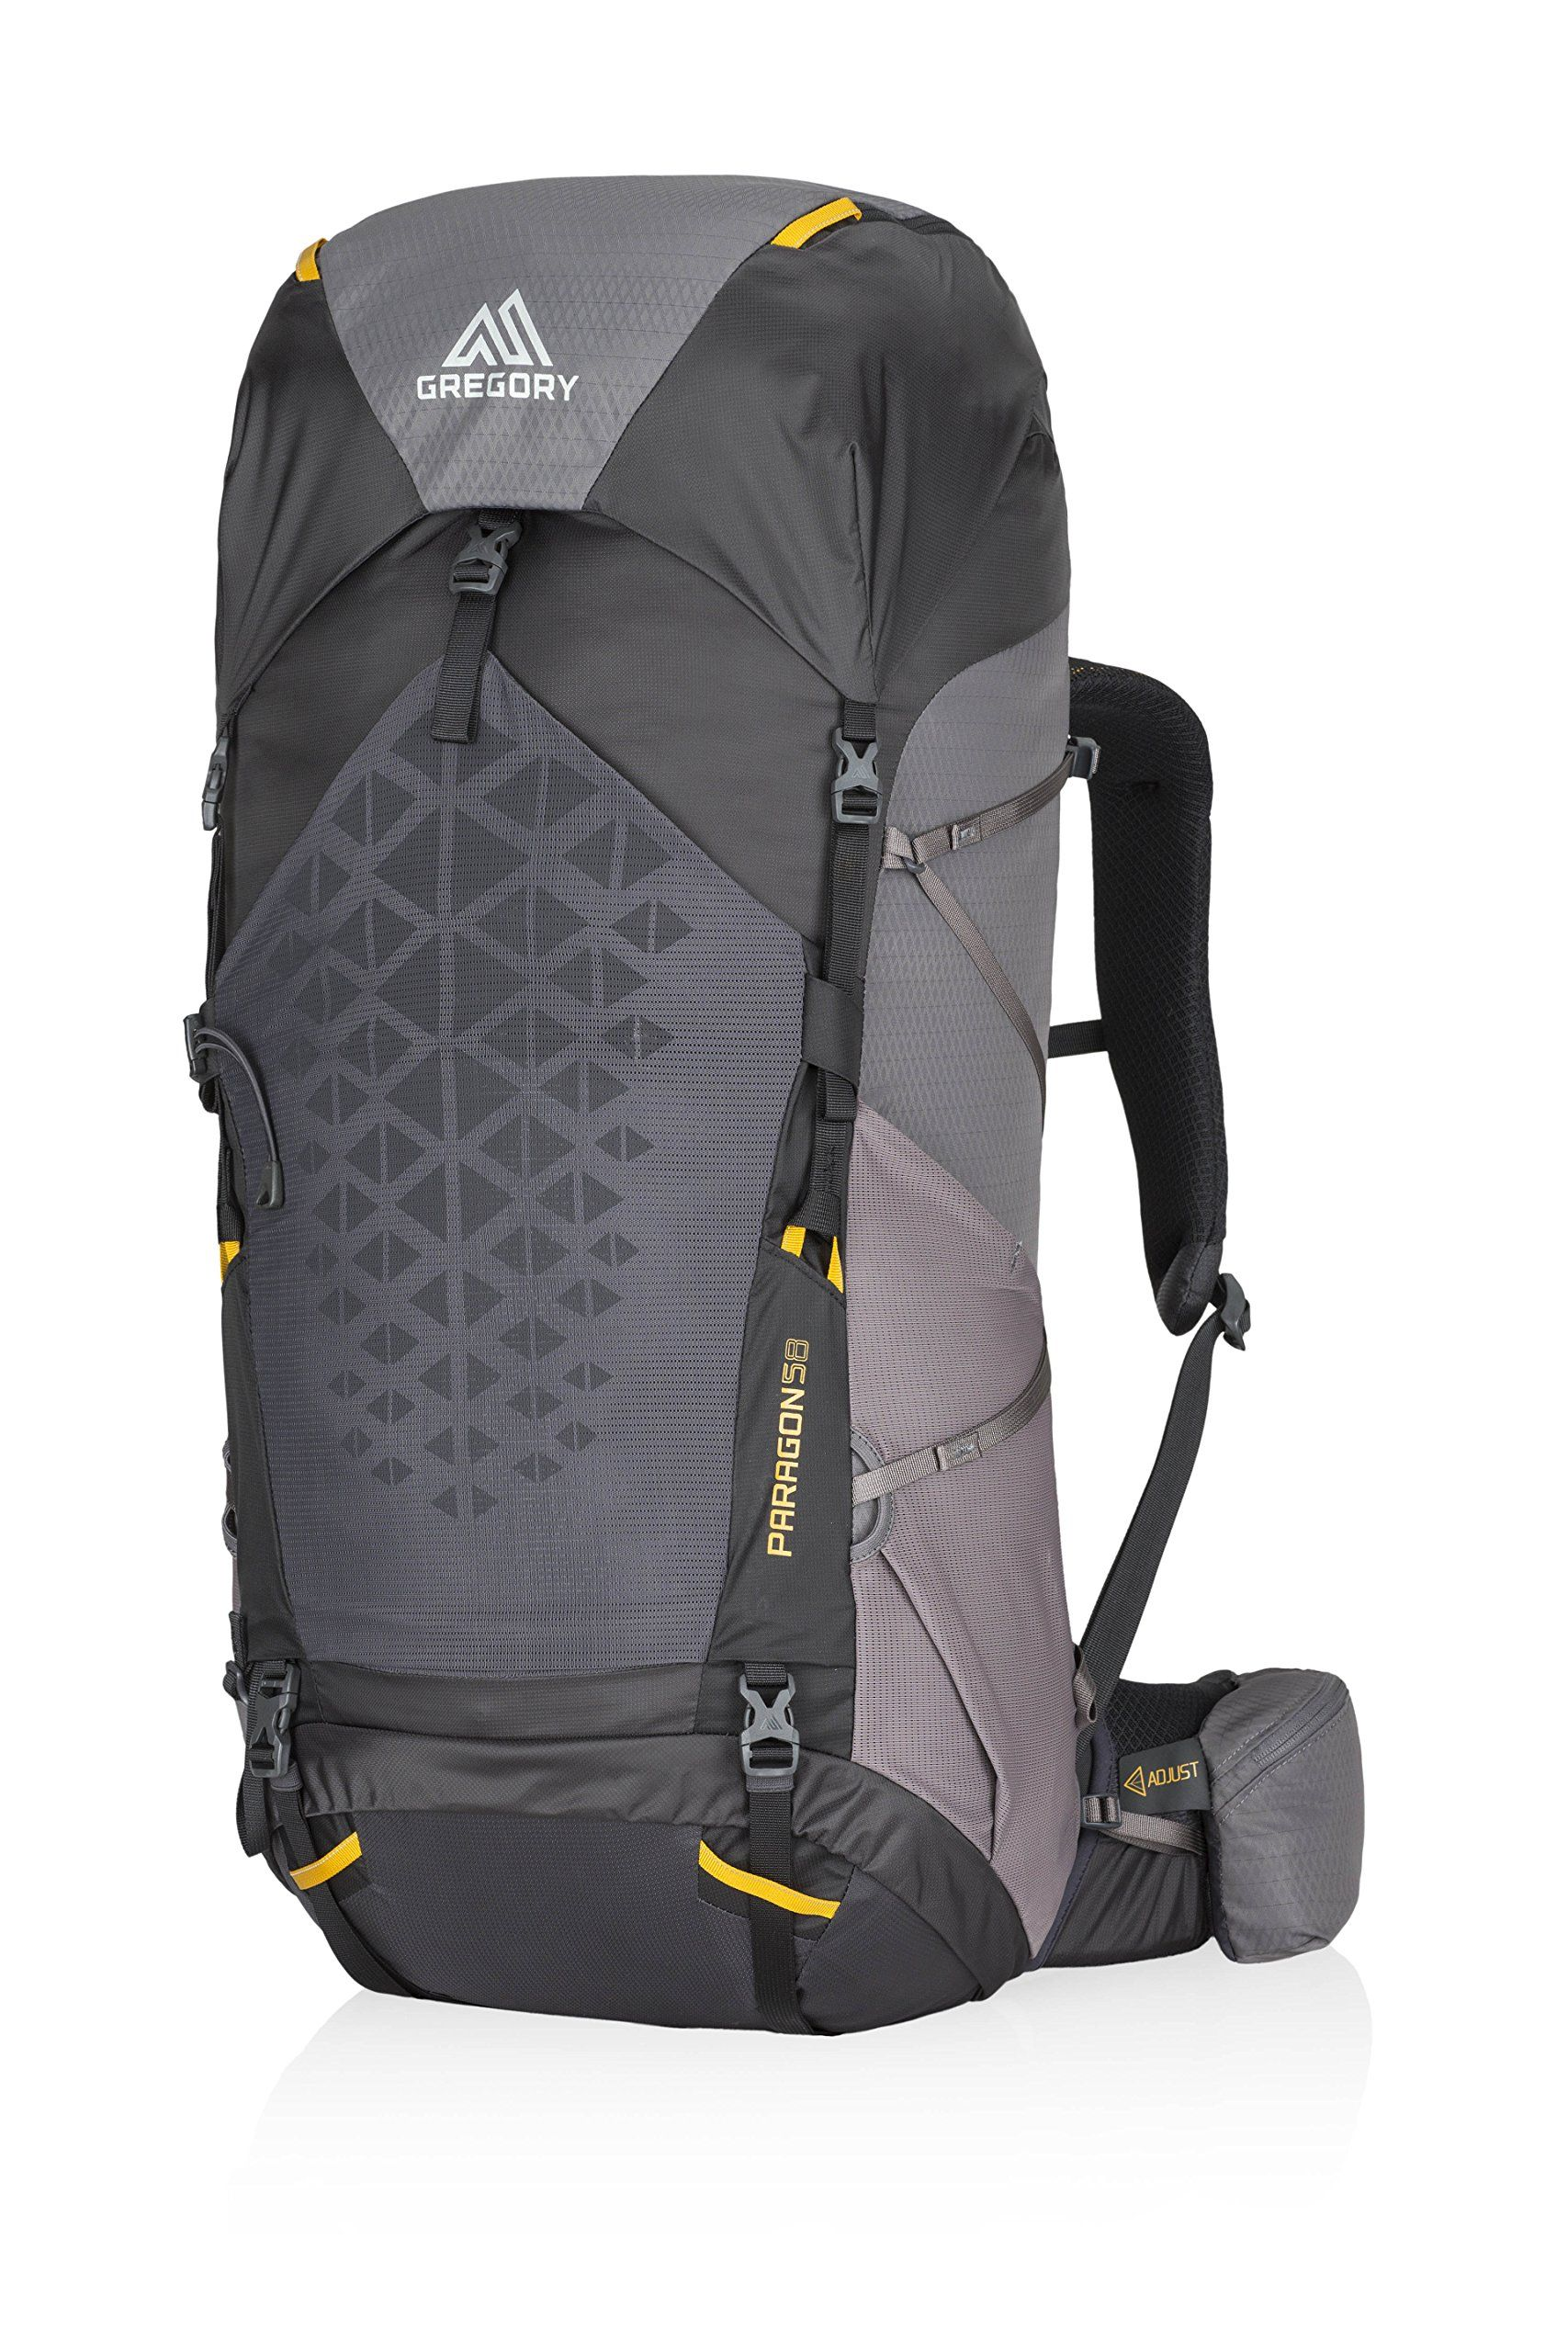 df466d66cfc Gregory Mountain Products Paragon 58 Liter Mens Backpack Sunset Grey  Small Medium   See this great product. (This is an affiliate link)